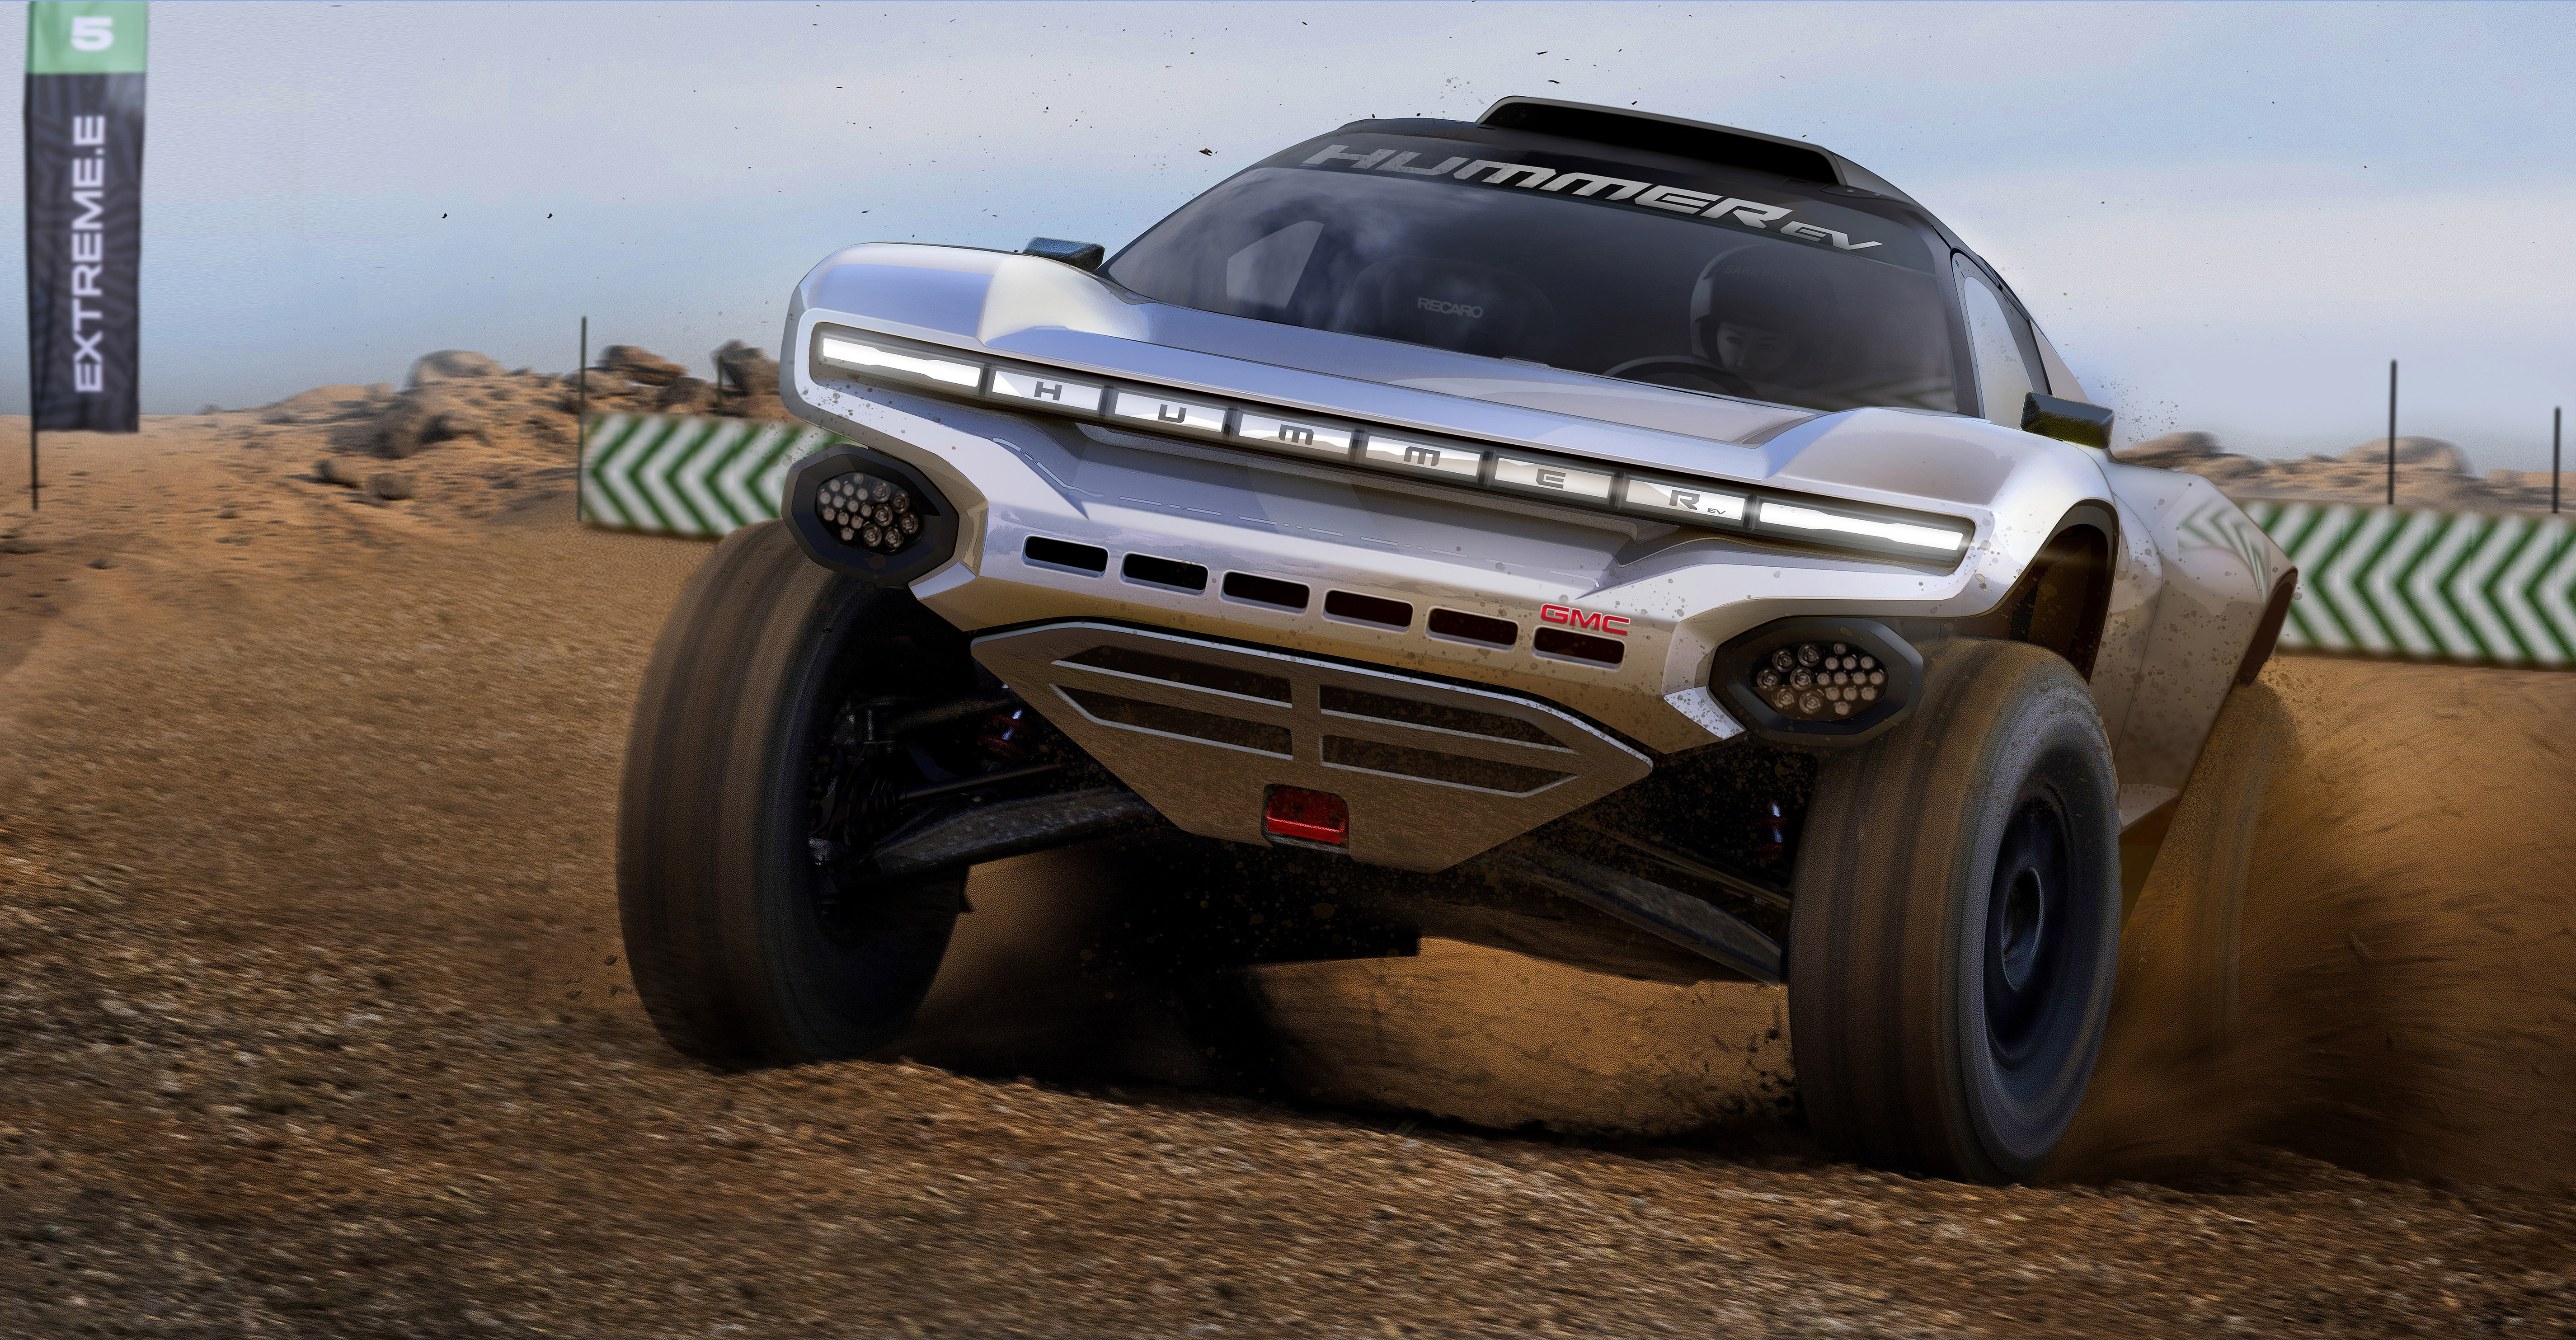 GMC and Chip Ganassi Racing prepare to take a Hummer EV-inspired racer to Extreme E